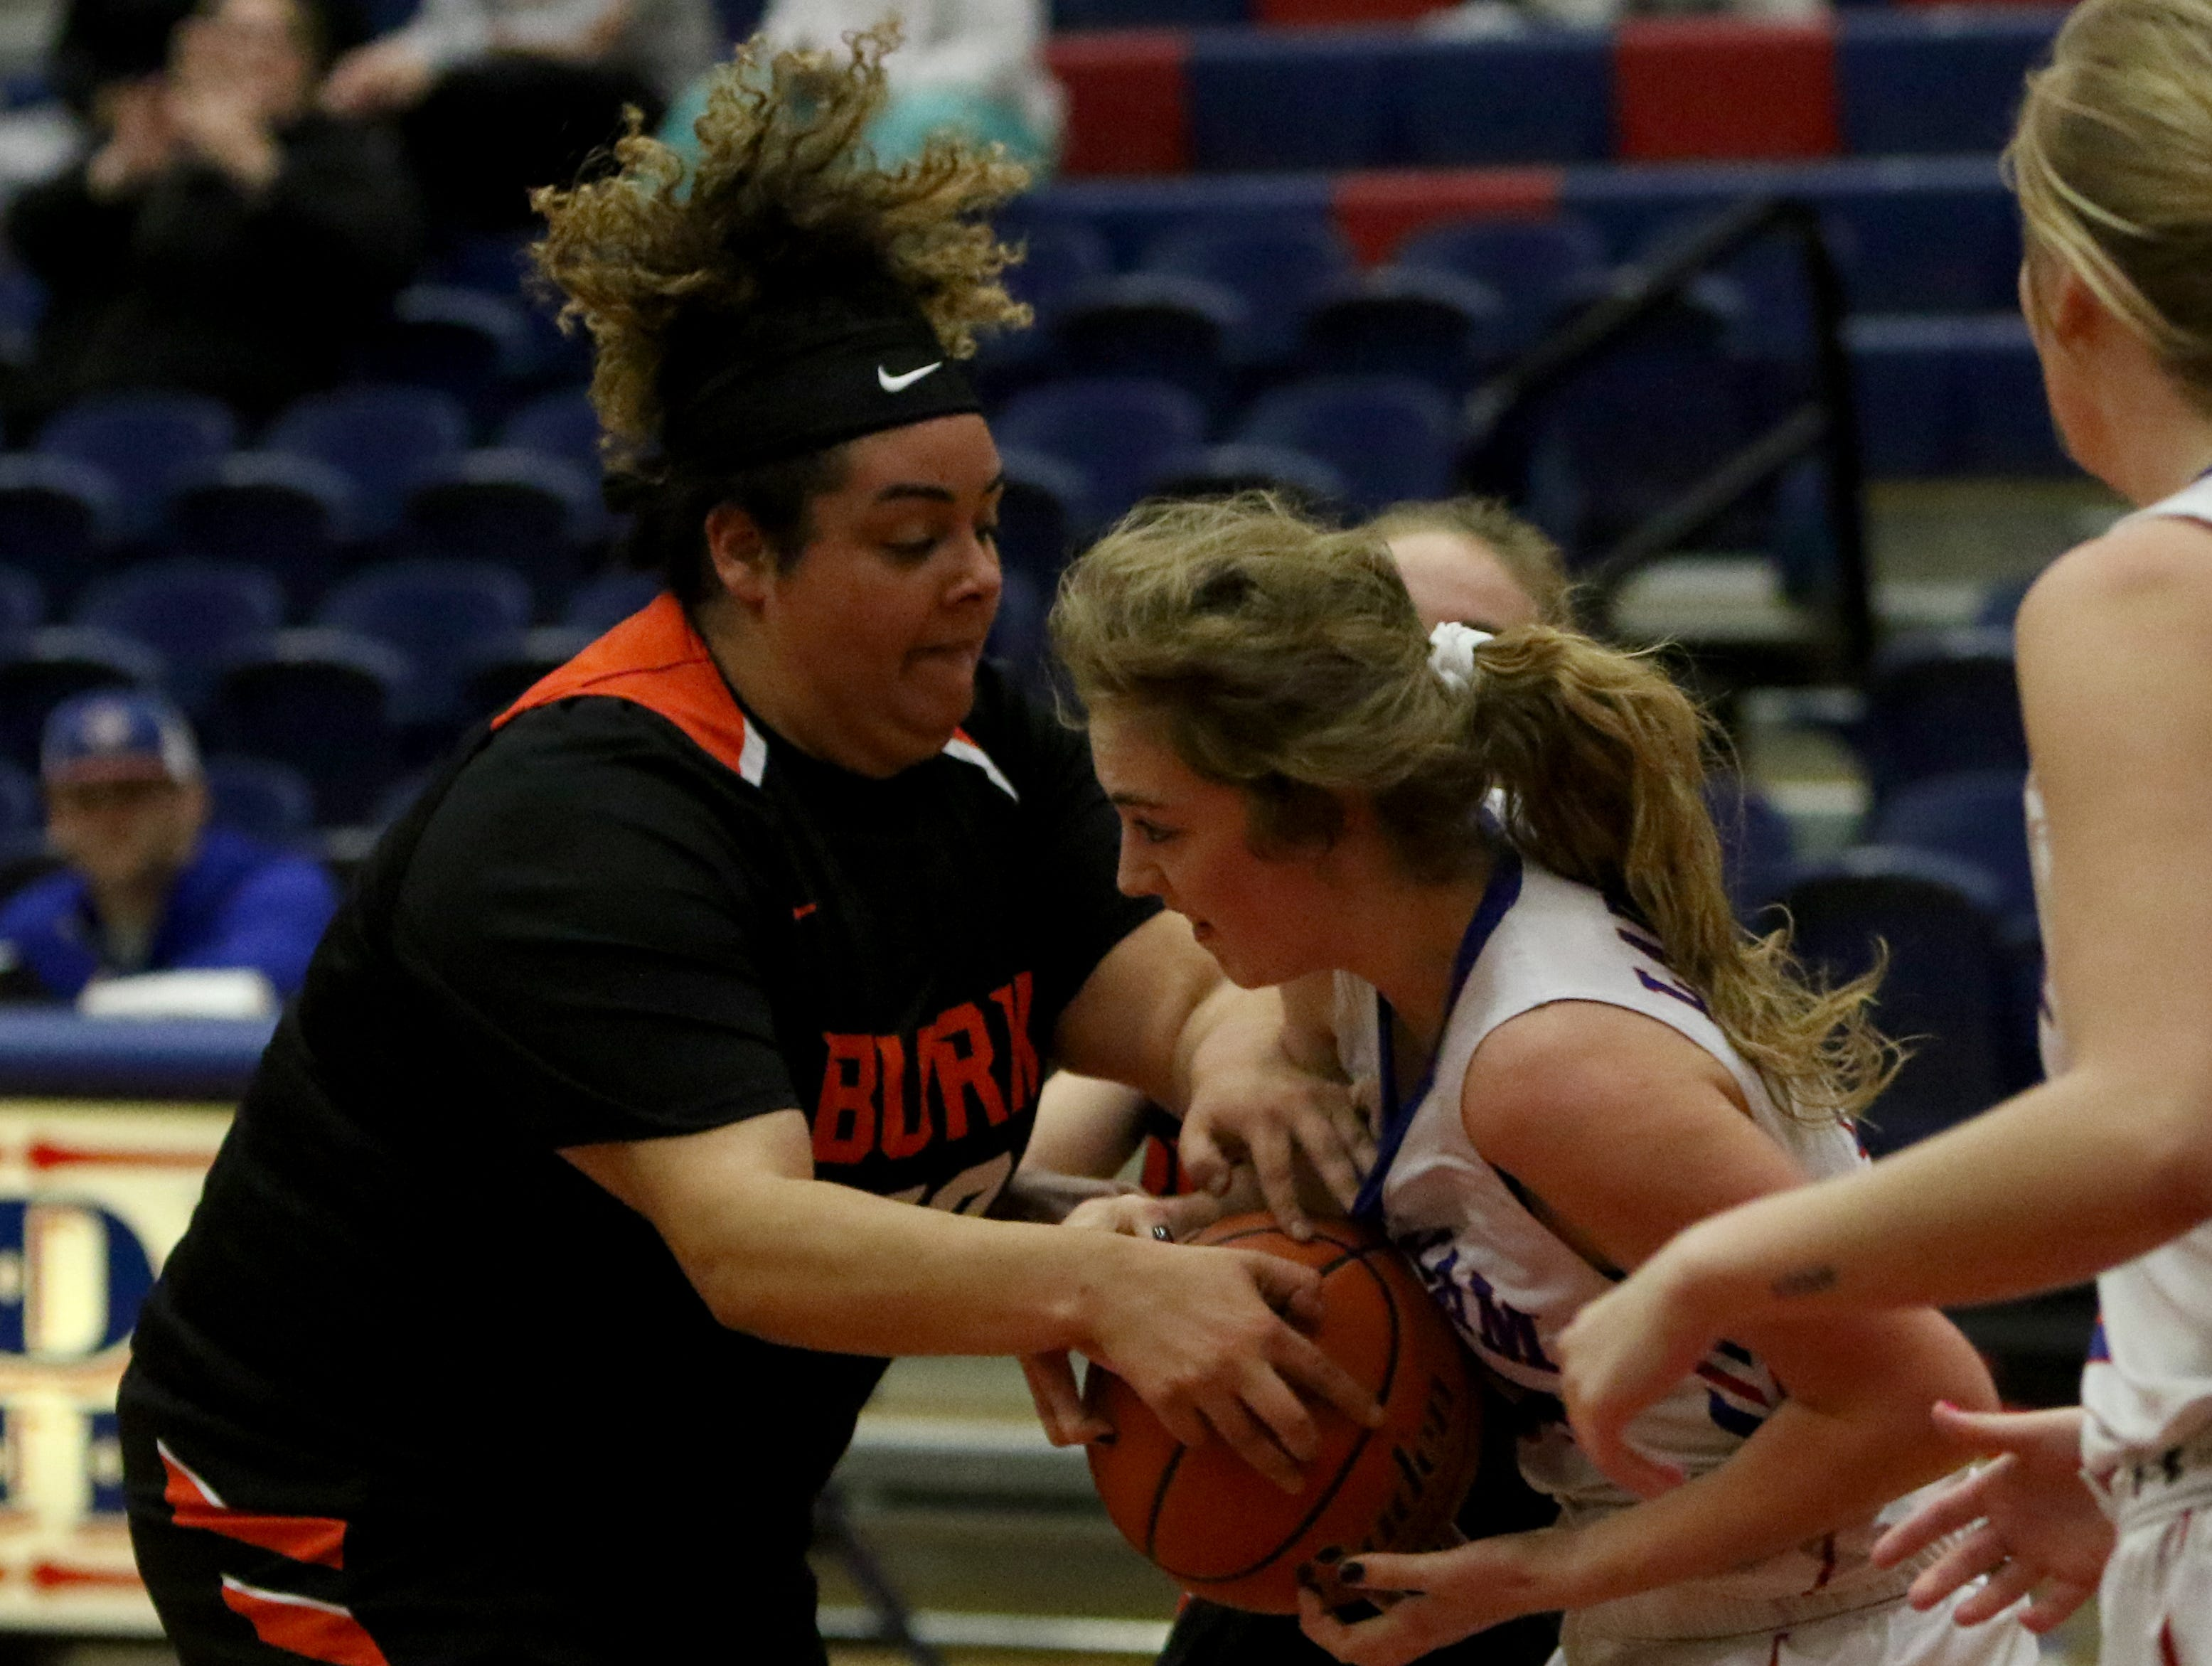 Burkburnett's Kerissa Durham tries to take the ball from Graham's Emma Ranger Friday, Jan. 4, 2019, in Graham. The Lady Blues defeated the Lady Bulldogs 51-33.